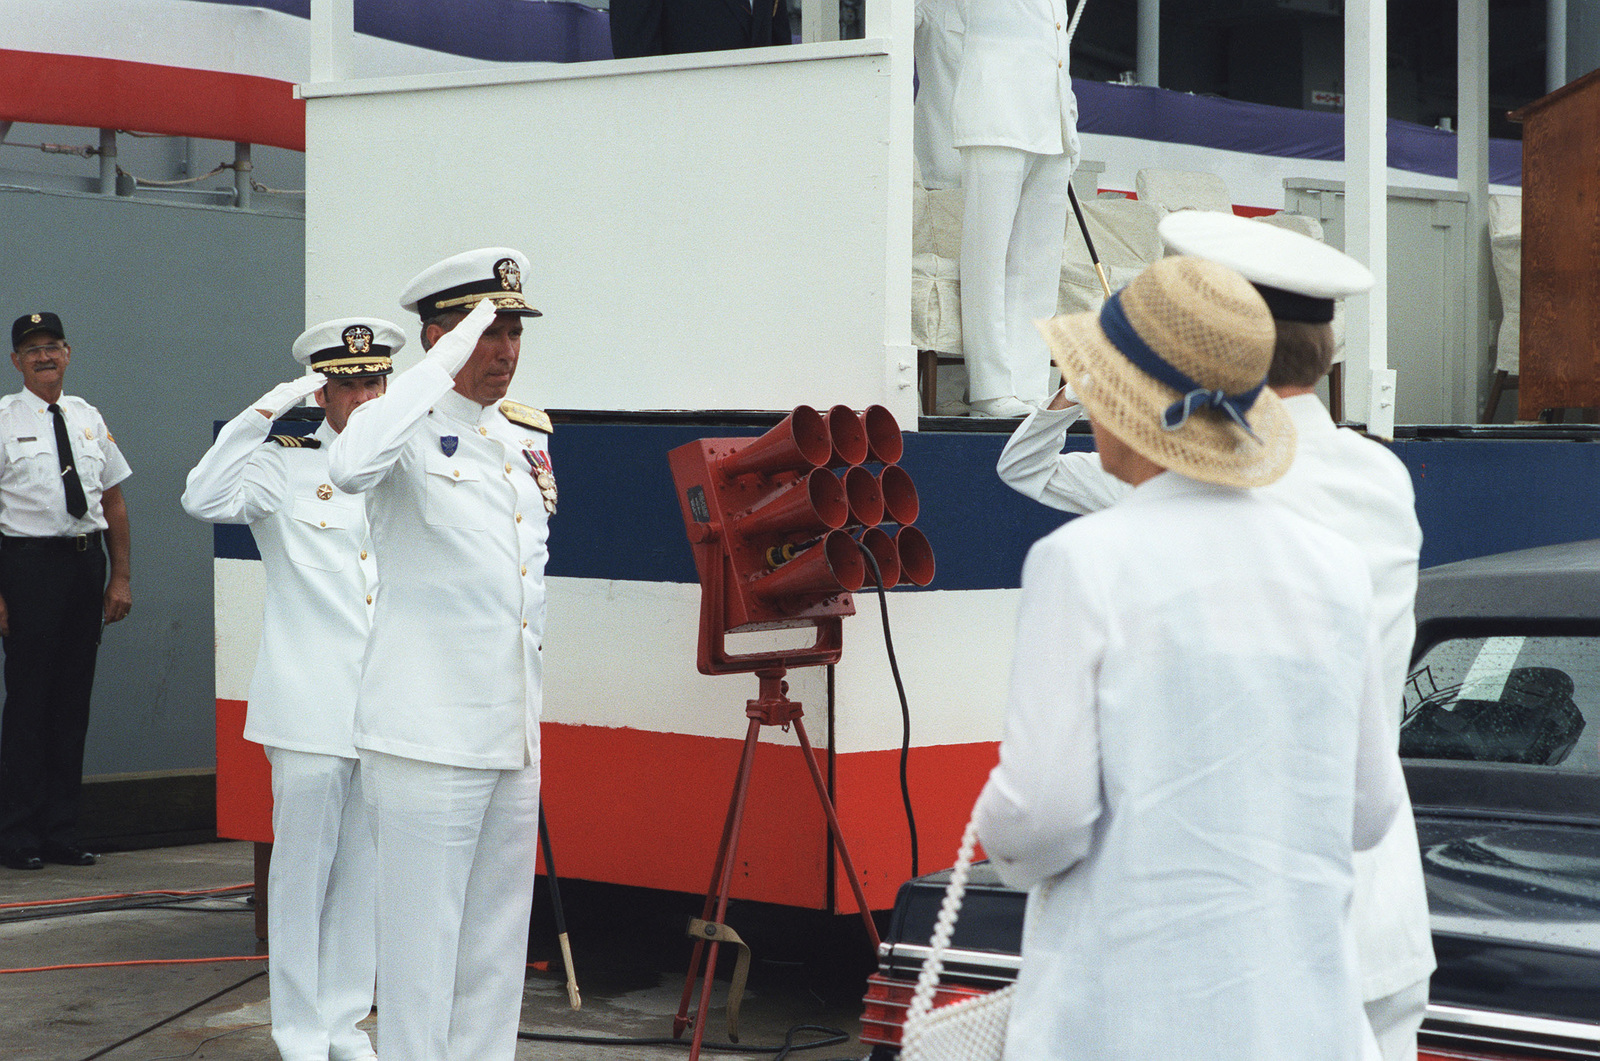 Admiral (ADM) Wesley L. McDonald, commander in chief, Atlantic and Atlantic Fleet, salutes as his wife, Norma Joy McDonald, arrives for the commissioning of the guided missile frigate USS ELROD (FFG 55). Mrs. McDonald is the ship's sponsor